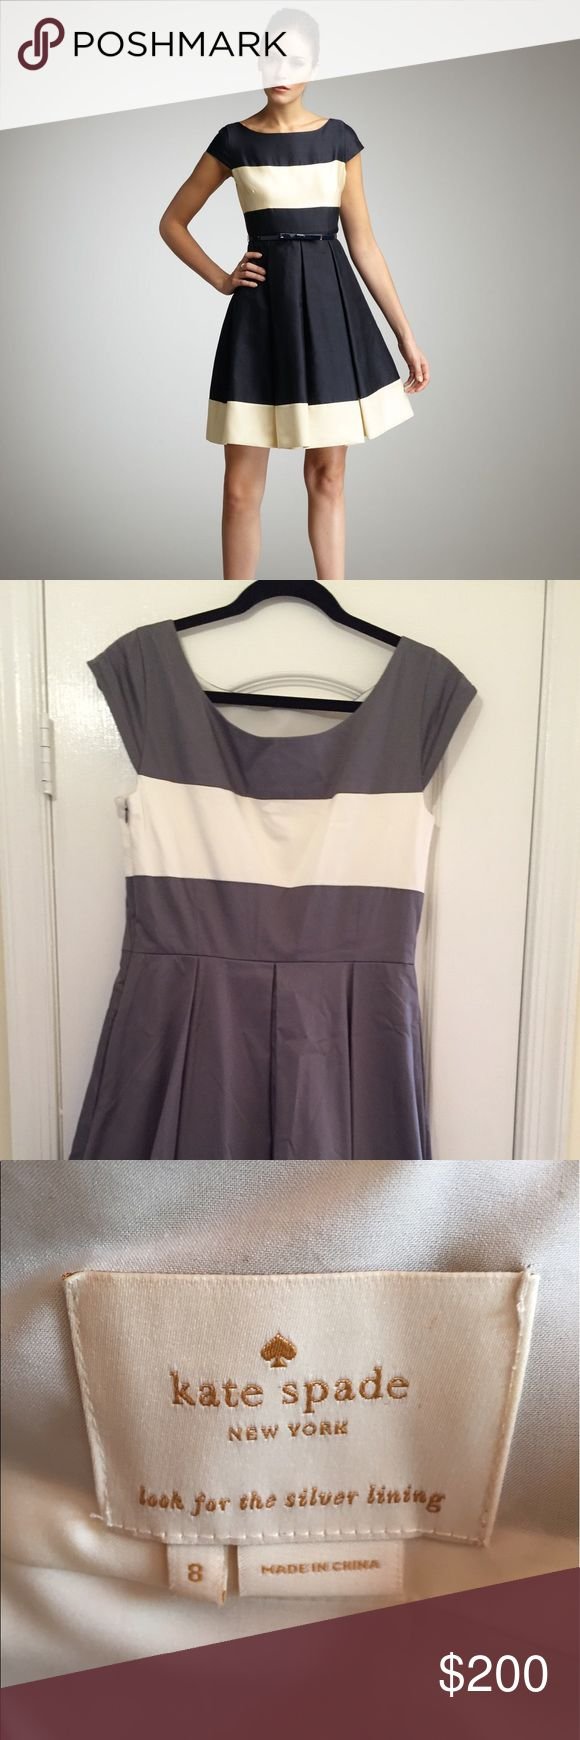 Kate Spade Cap Sleeve Gray and White Striped Dress Size 8 Kate Spade Cap Sleeve Gray and White Striped Dress! Great condition, though could use a run under the iron!  Perfect for work or a fun weekend day!  Barely worn and in great condition. Belt not included. kate spade Dresses